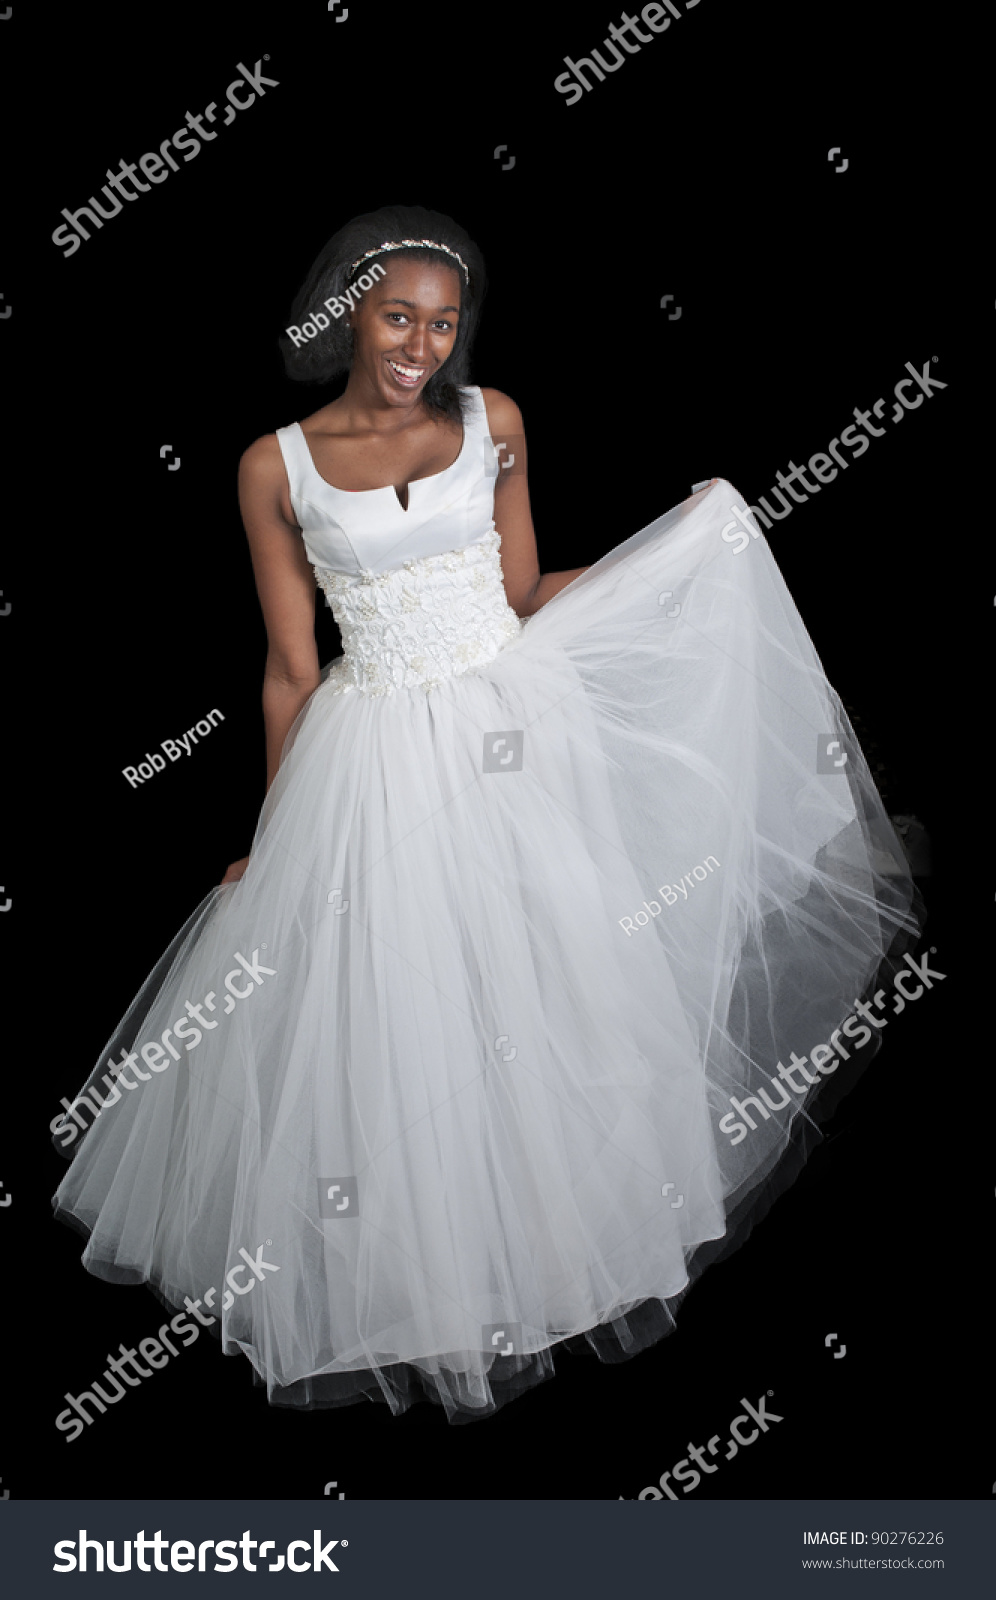 african traditional wedding dresses african american wedding dresses African traditional wedding dresses photo 3